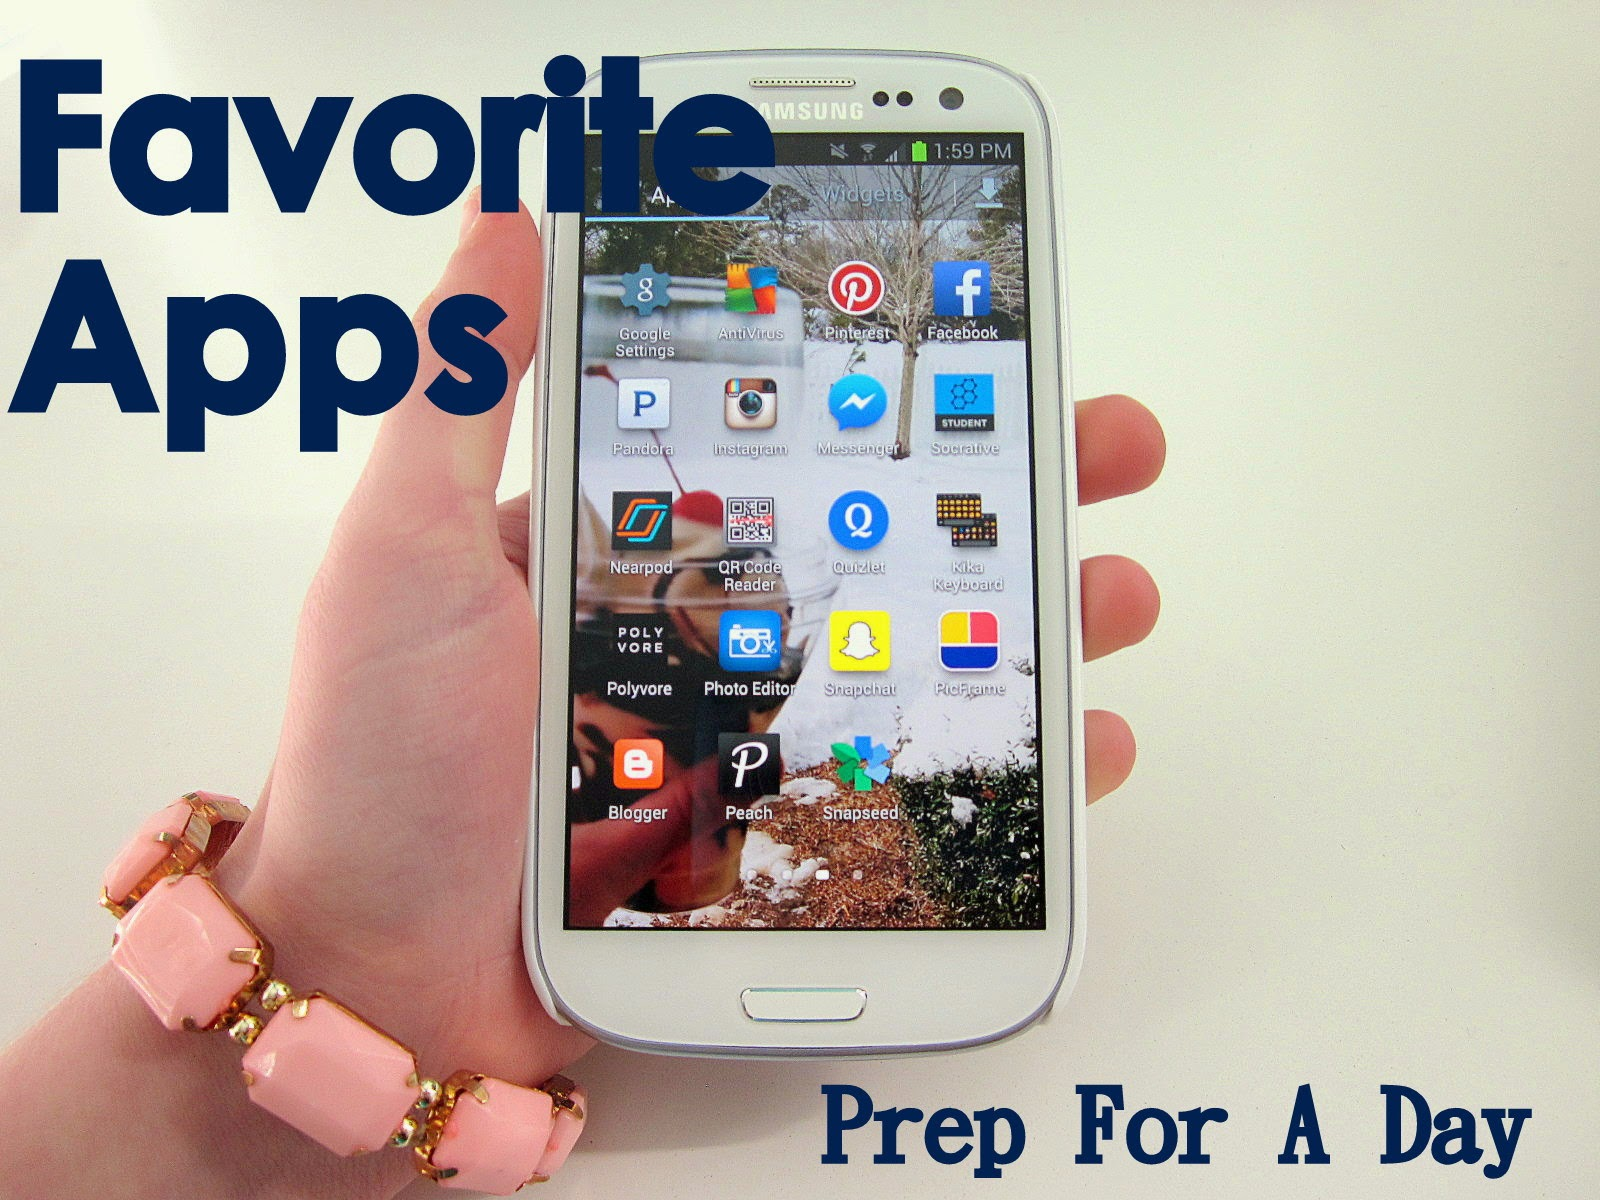 The Top Ten Apps To Have -- Prep For A Day